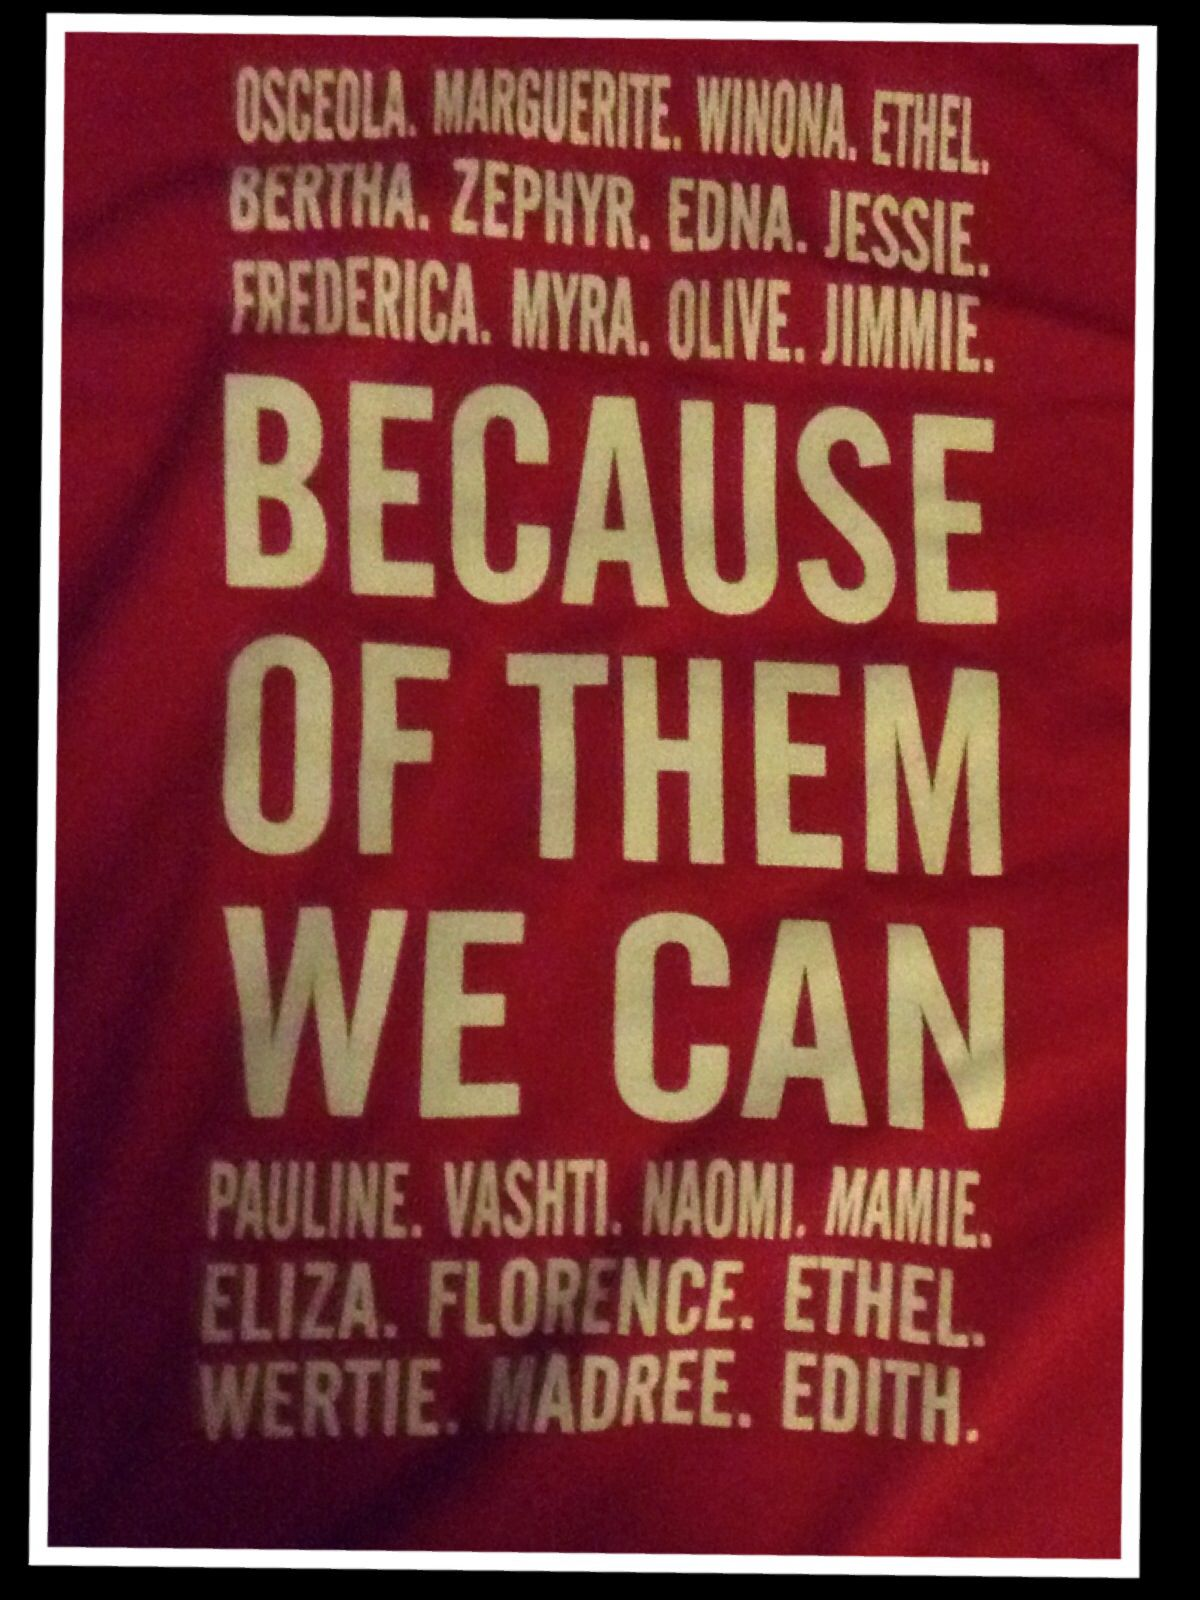 Founders dst pinterest delta sigma theta and pearls founders delta symboldelta girldelta sigma buycottarizona